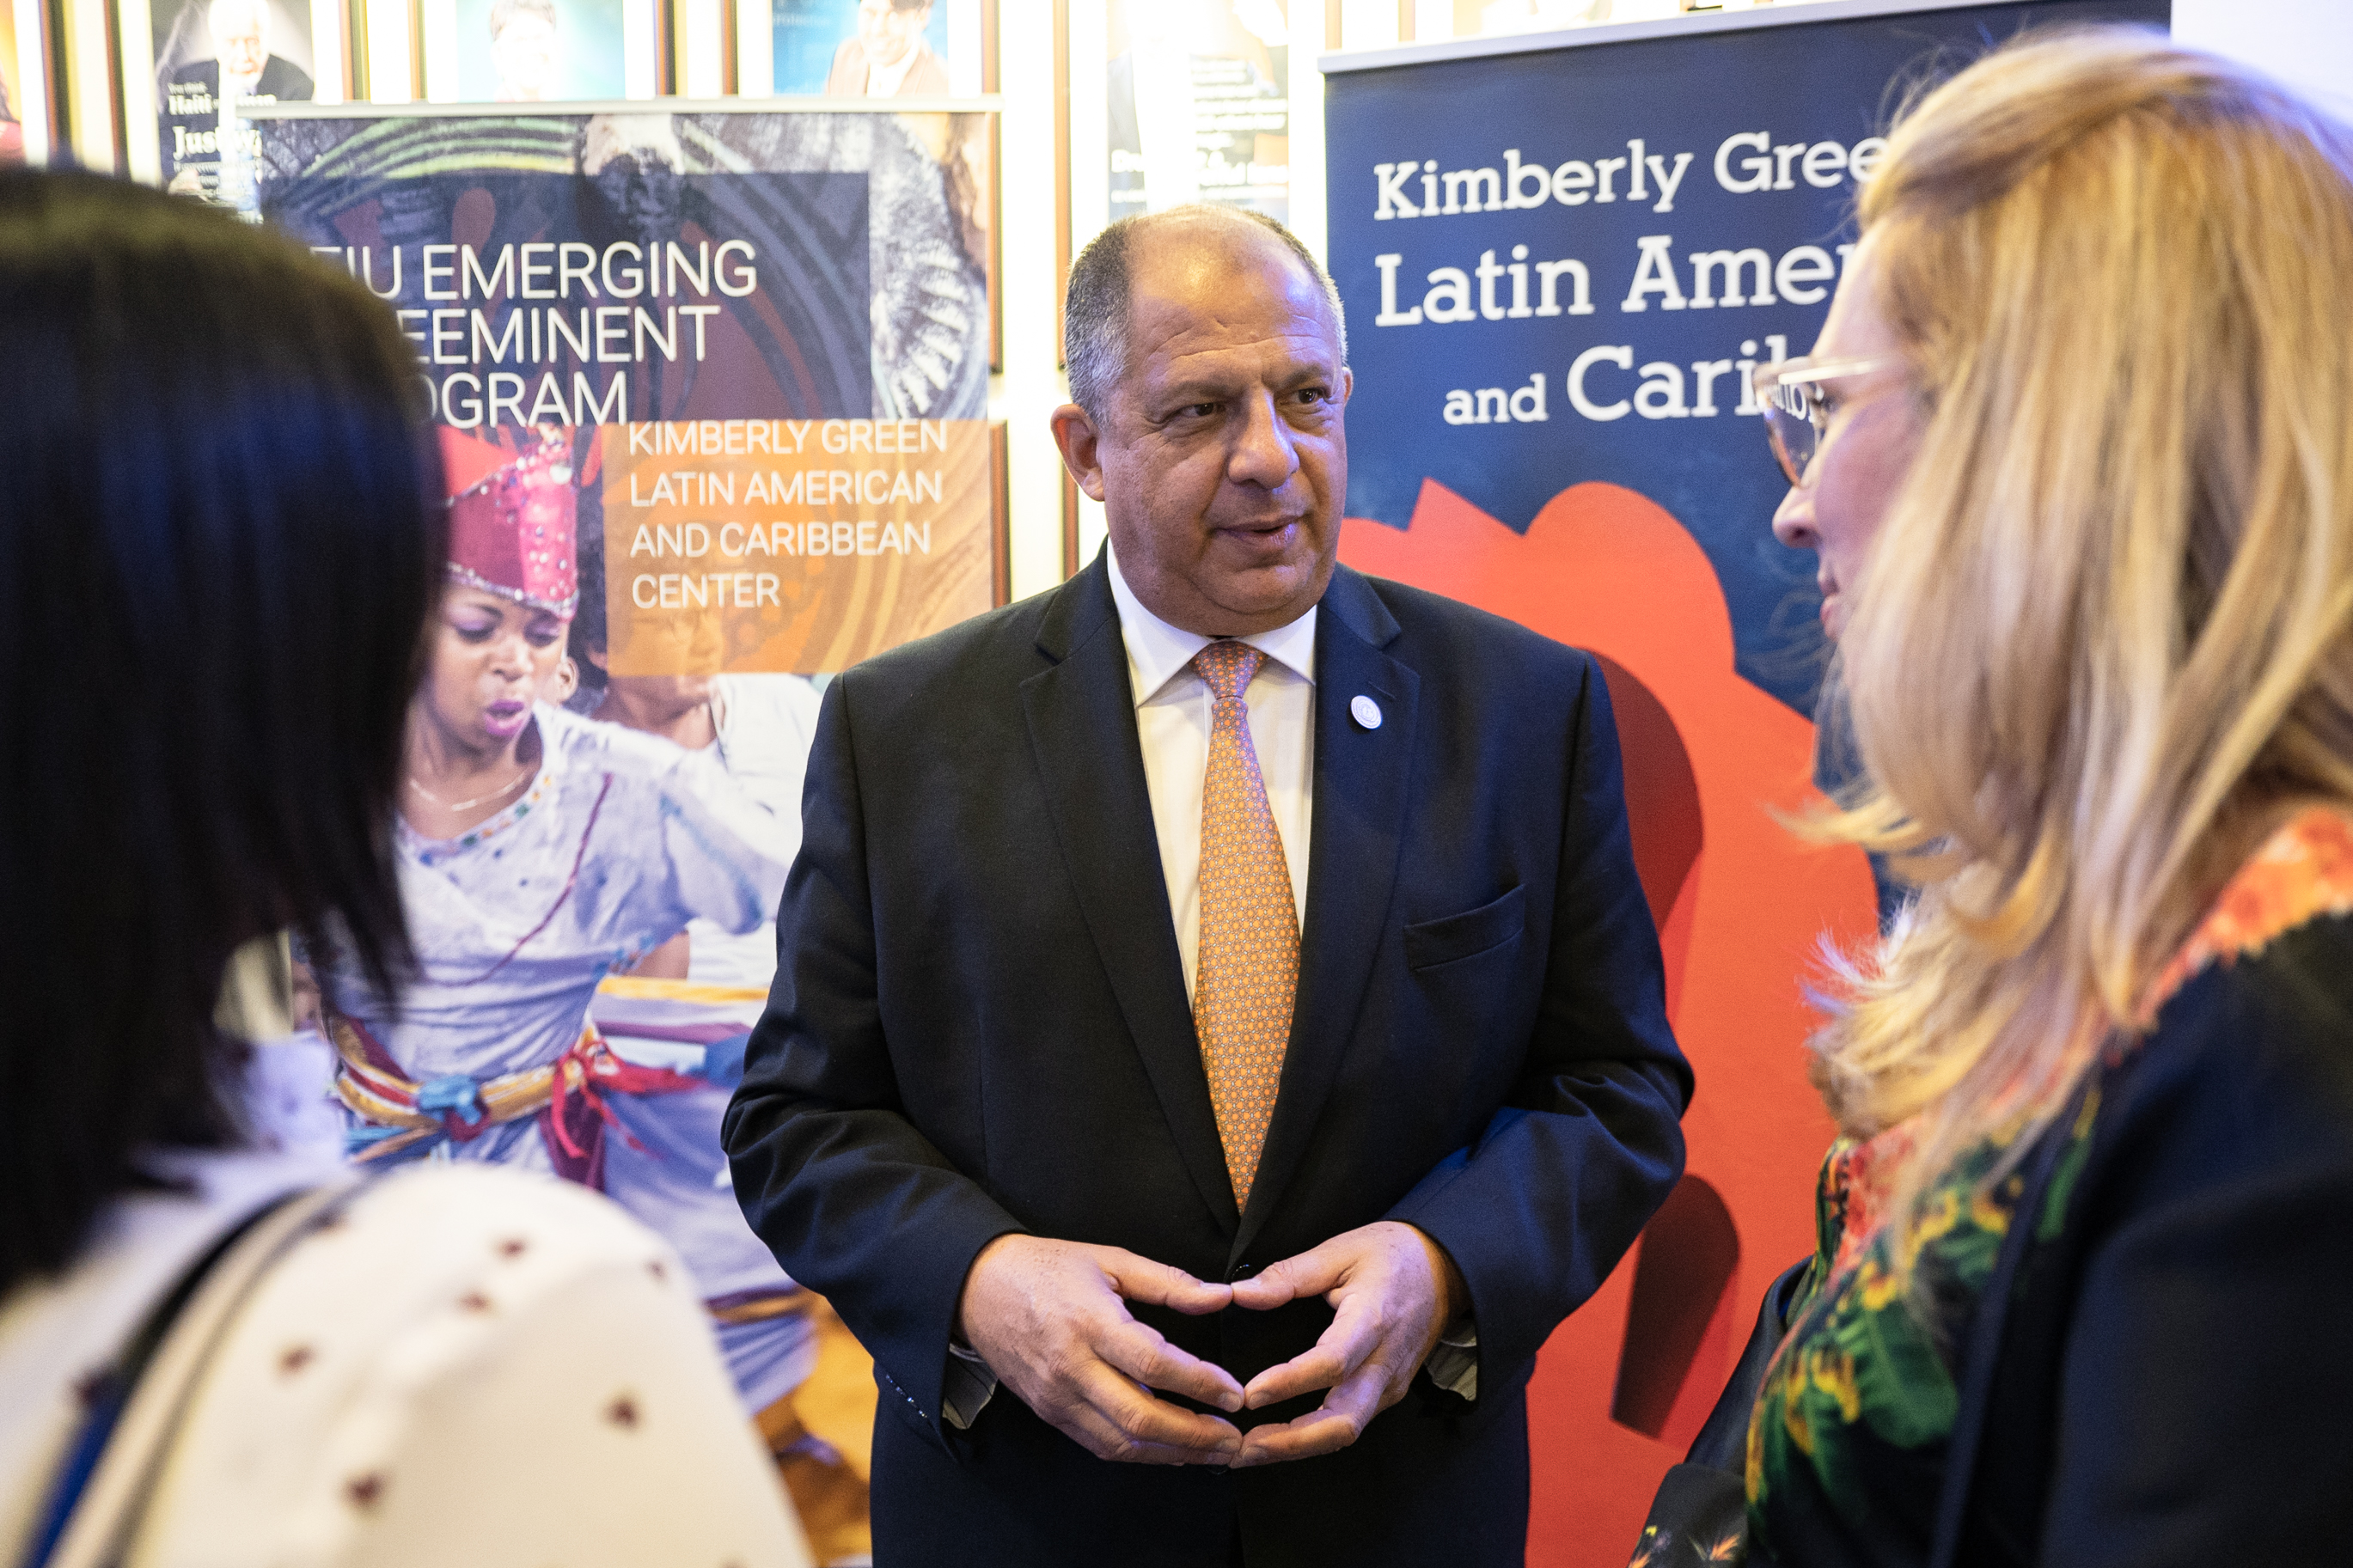 Former President of Costa Rica Luis Guillermo Solís Rivera discussed the future of the Americas at his first presentation as a Distinguished Visiting Scholar at the Kimberly Green Latin American and Caribbean Center.